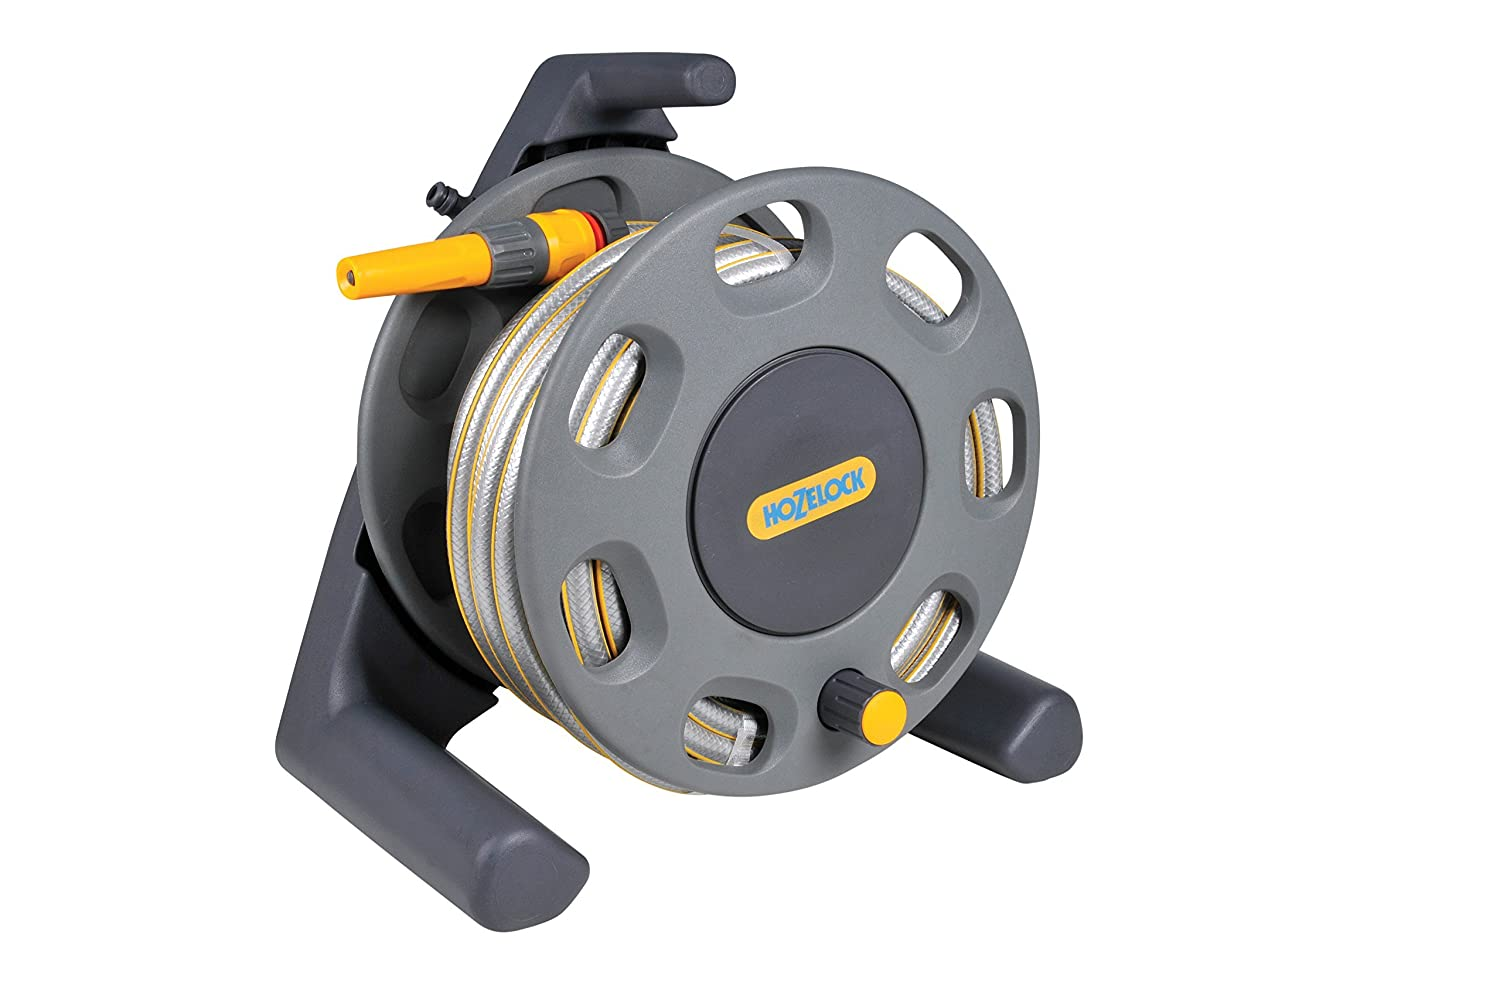 Hozelock 30m Compact Reel with 20m Hose Hozelock Ltd 2412R3444 Gardening Hoses